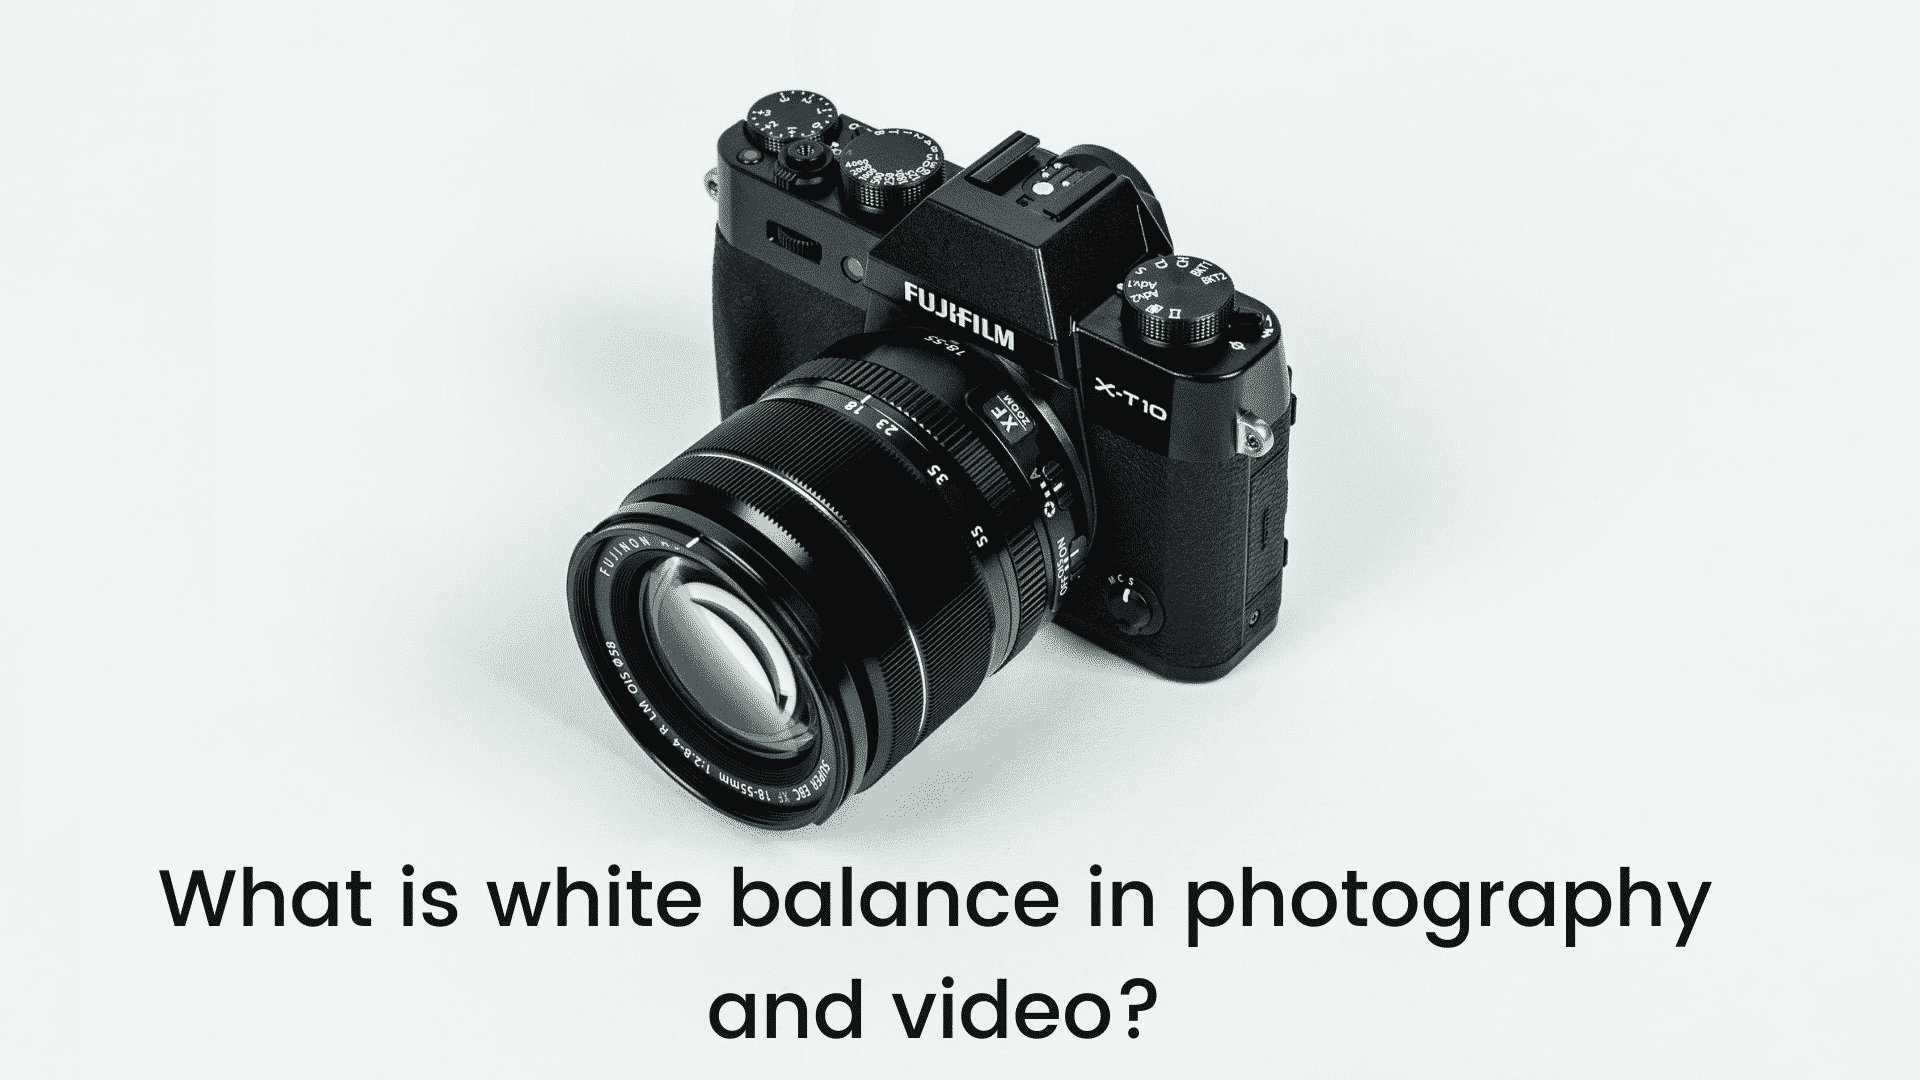 What is white balance in photography and video